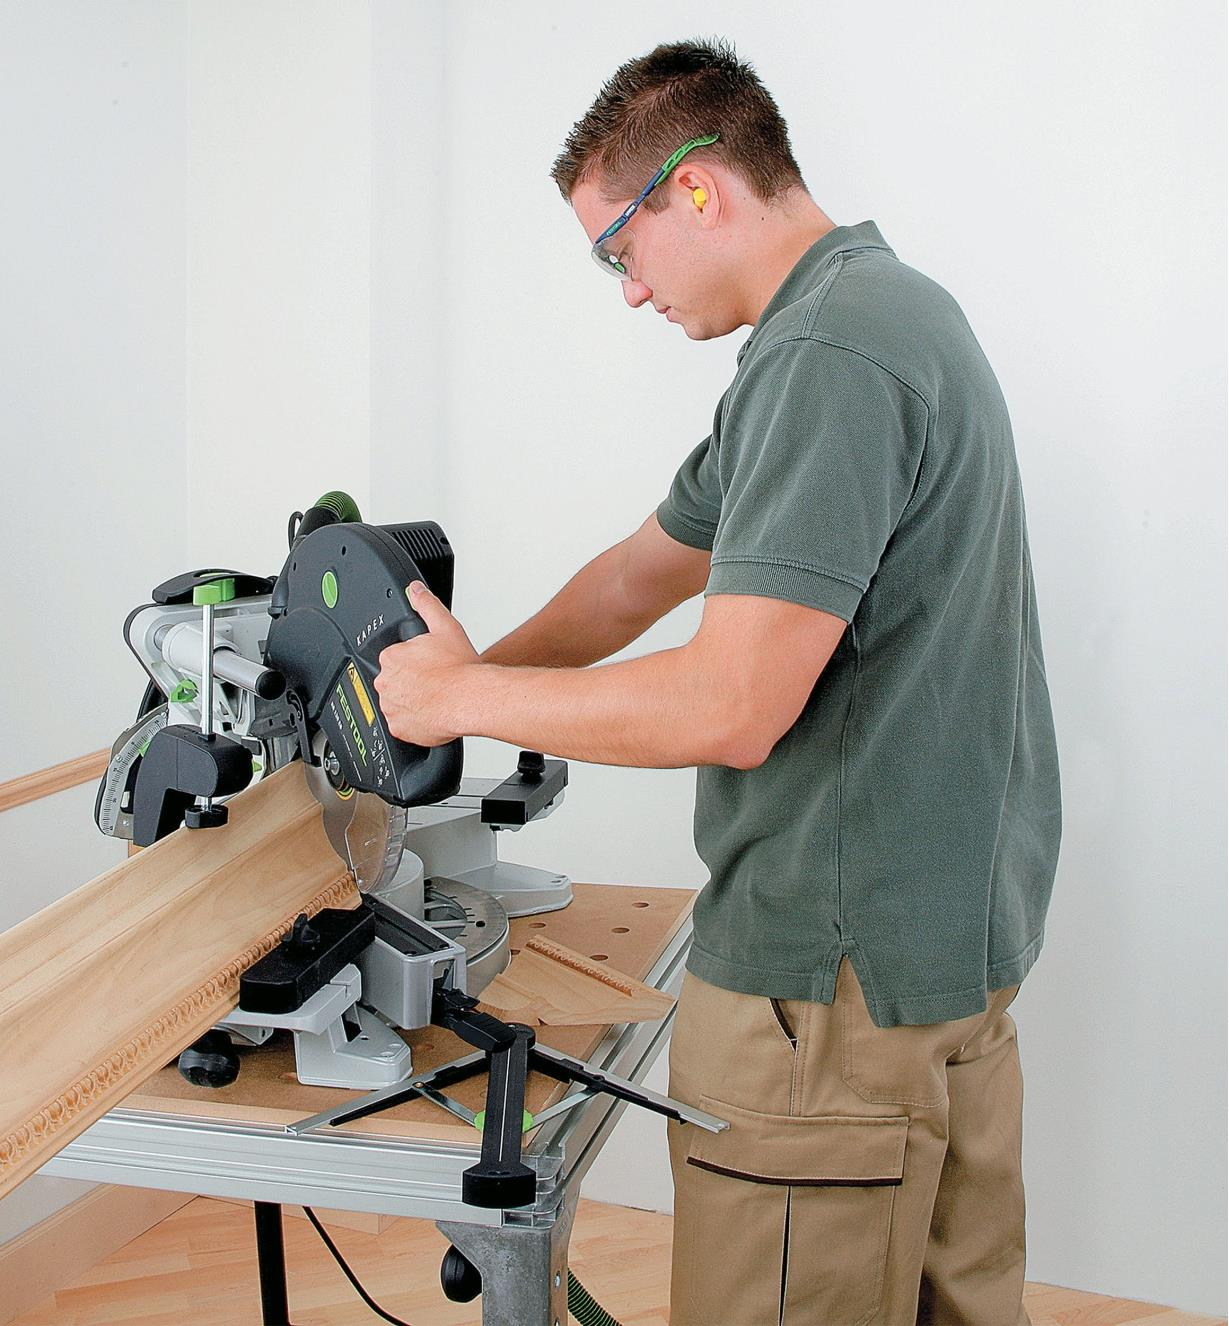 Cutting molding with the Kapex KS 120 EB Sliding Compound Miter Saw